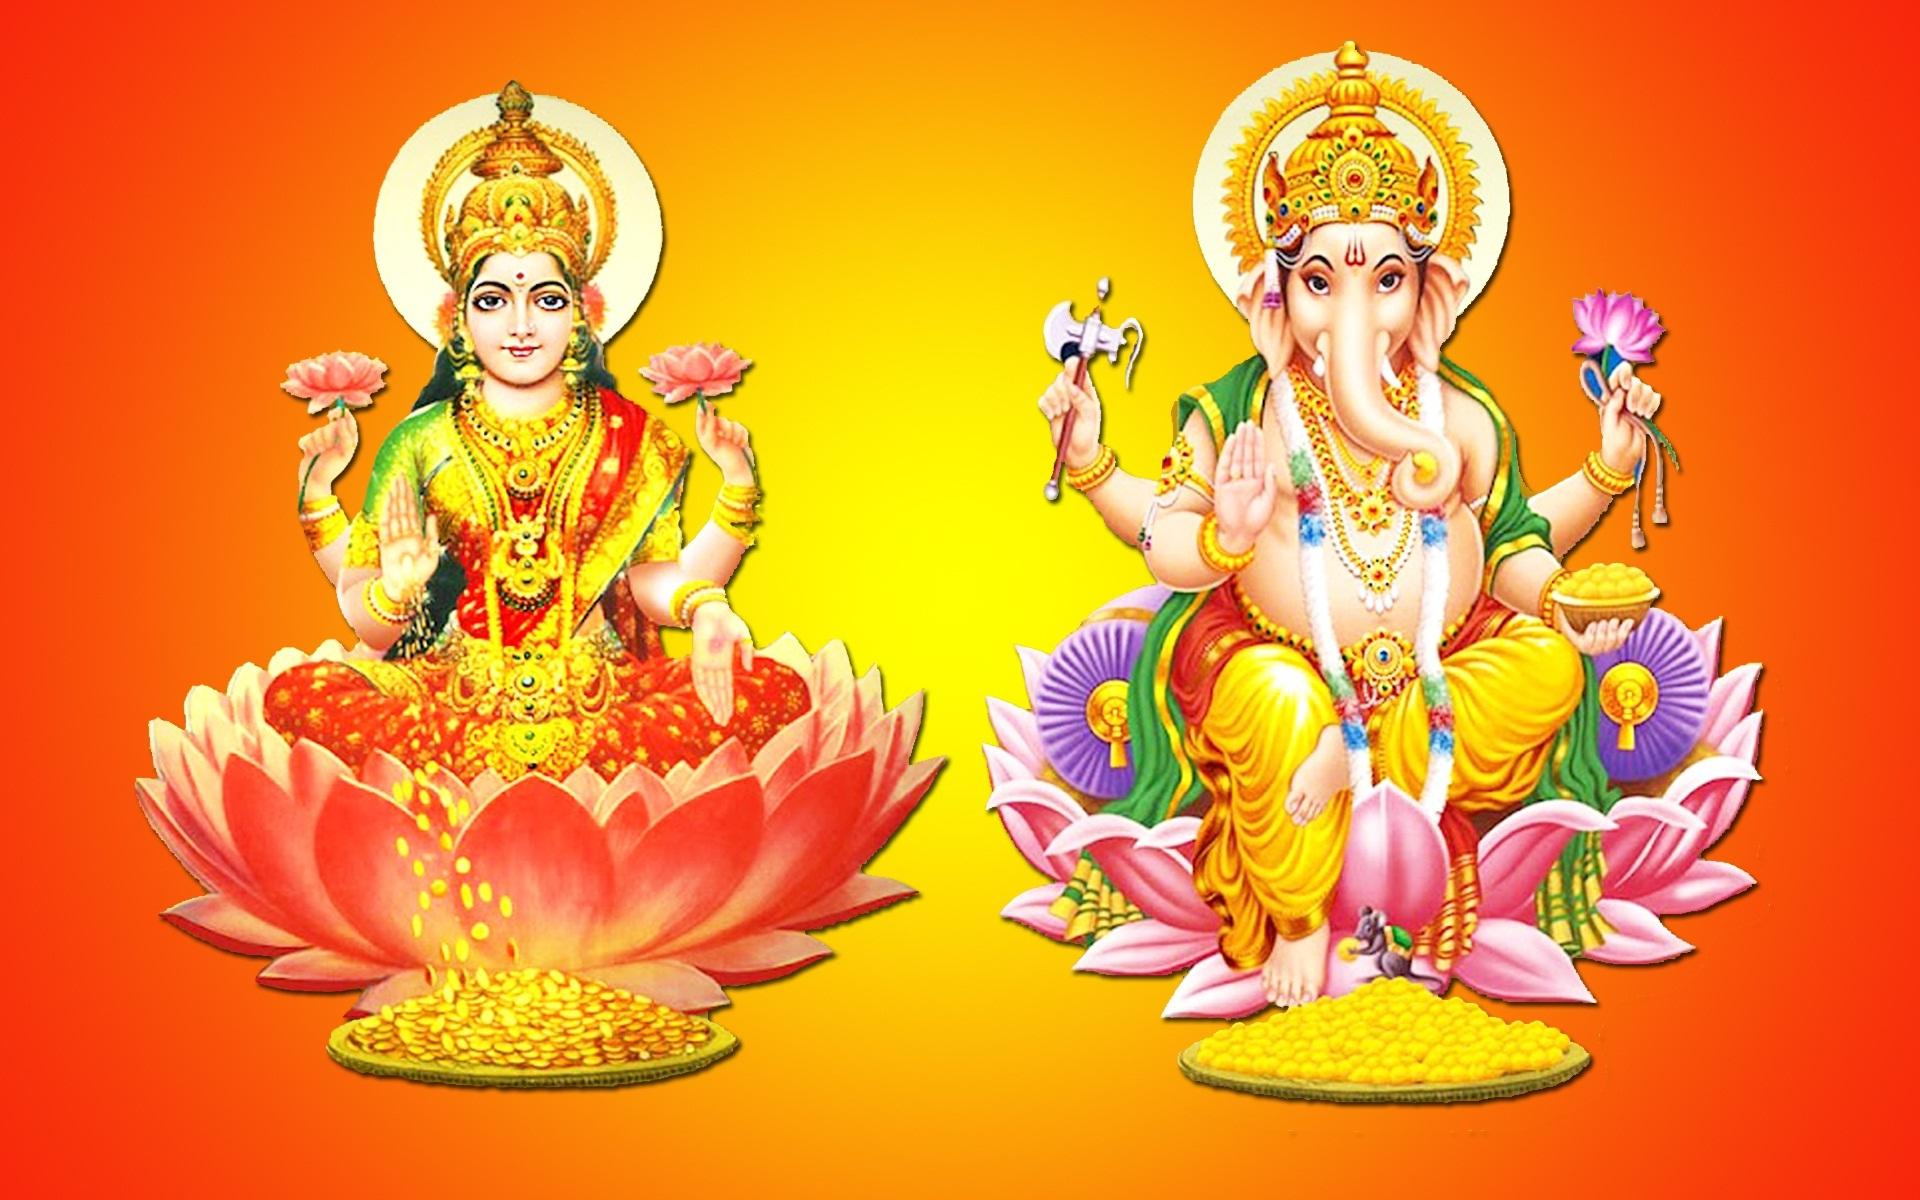 Laxmi Devi Hd Wallpaper Laxmi And Ganesh Ji 766782 Hd Wallpaper Backgrounds Download